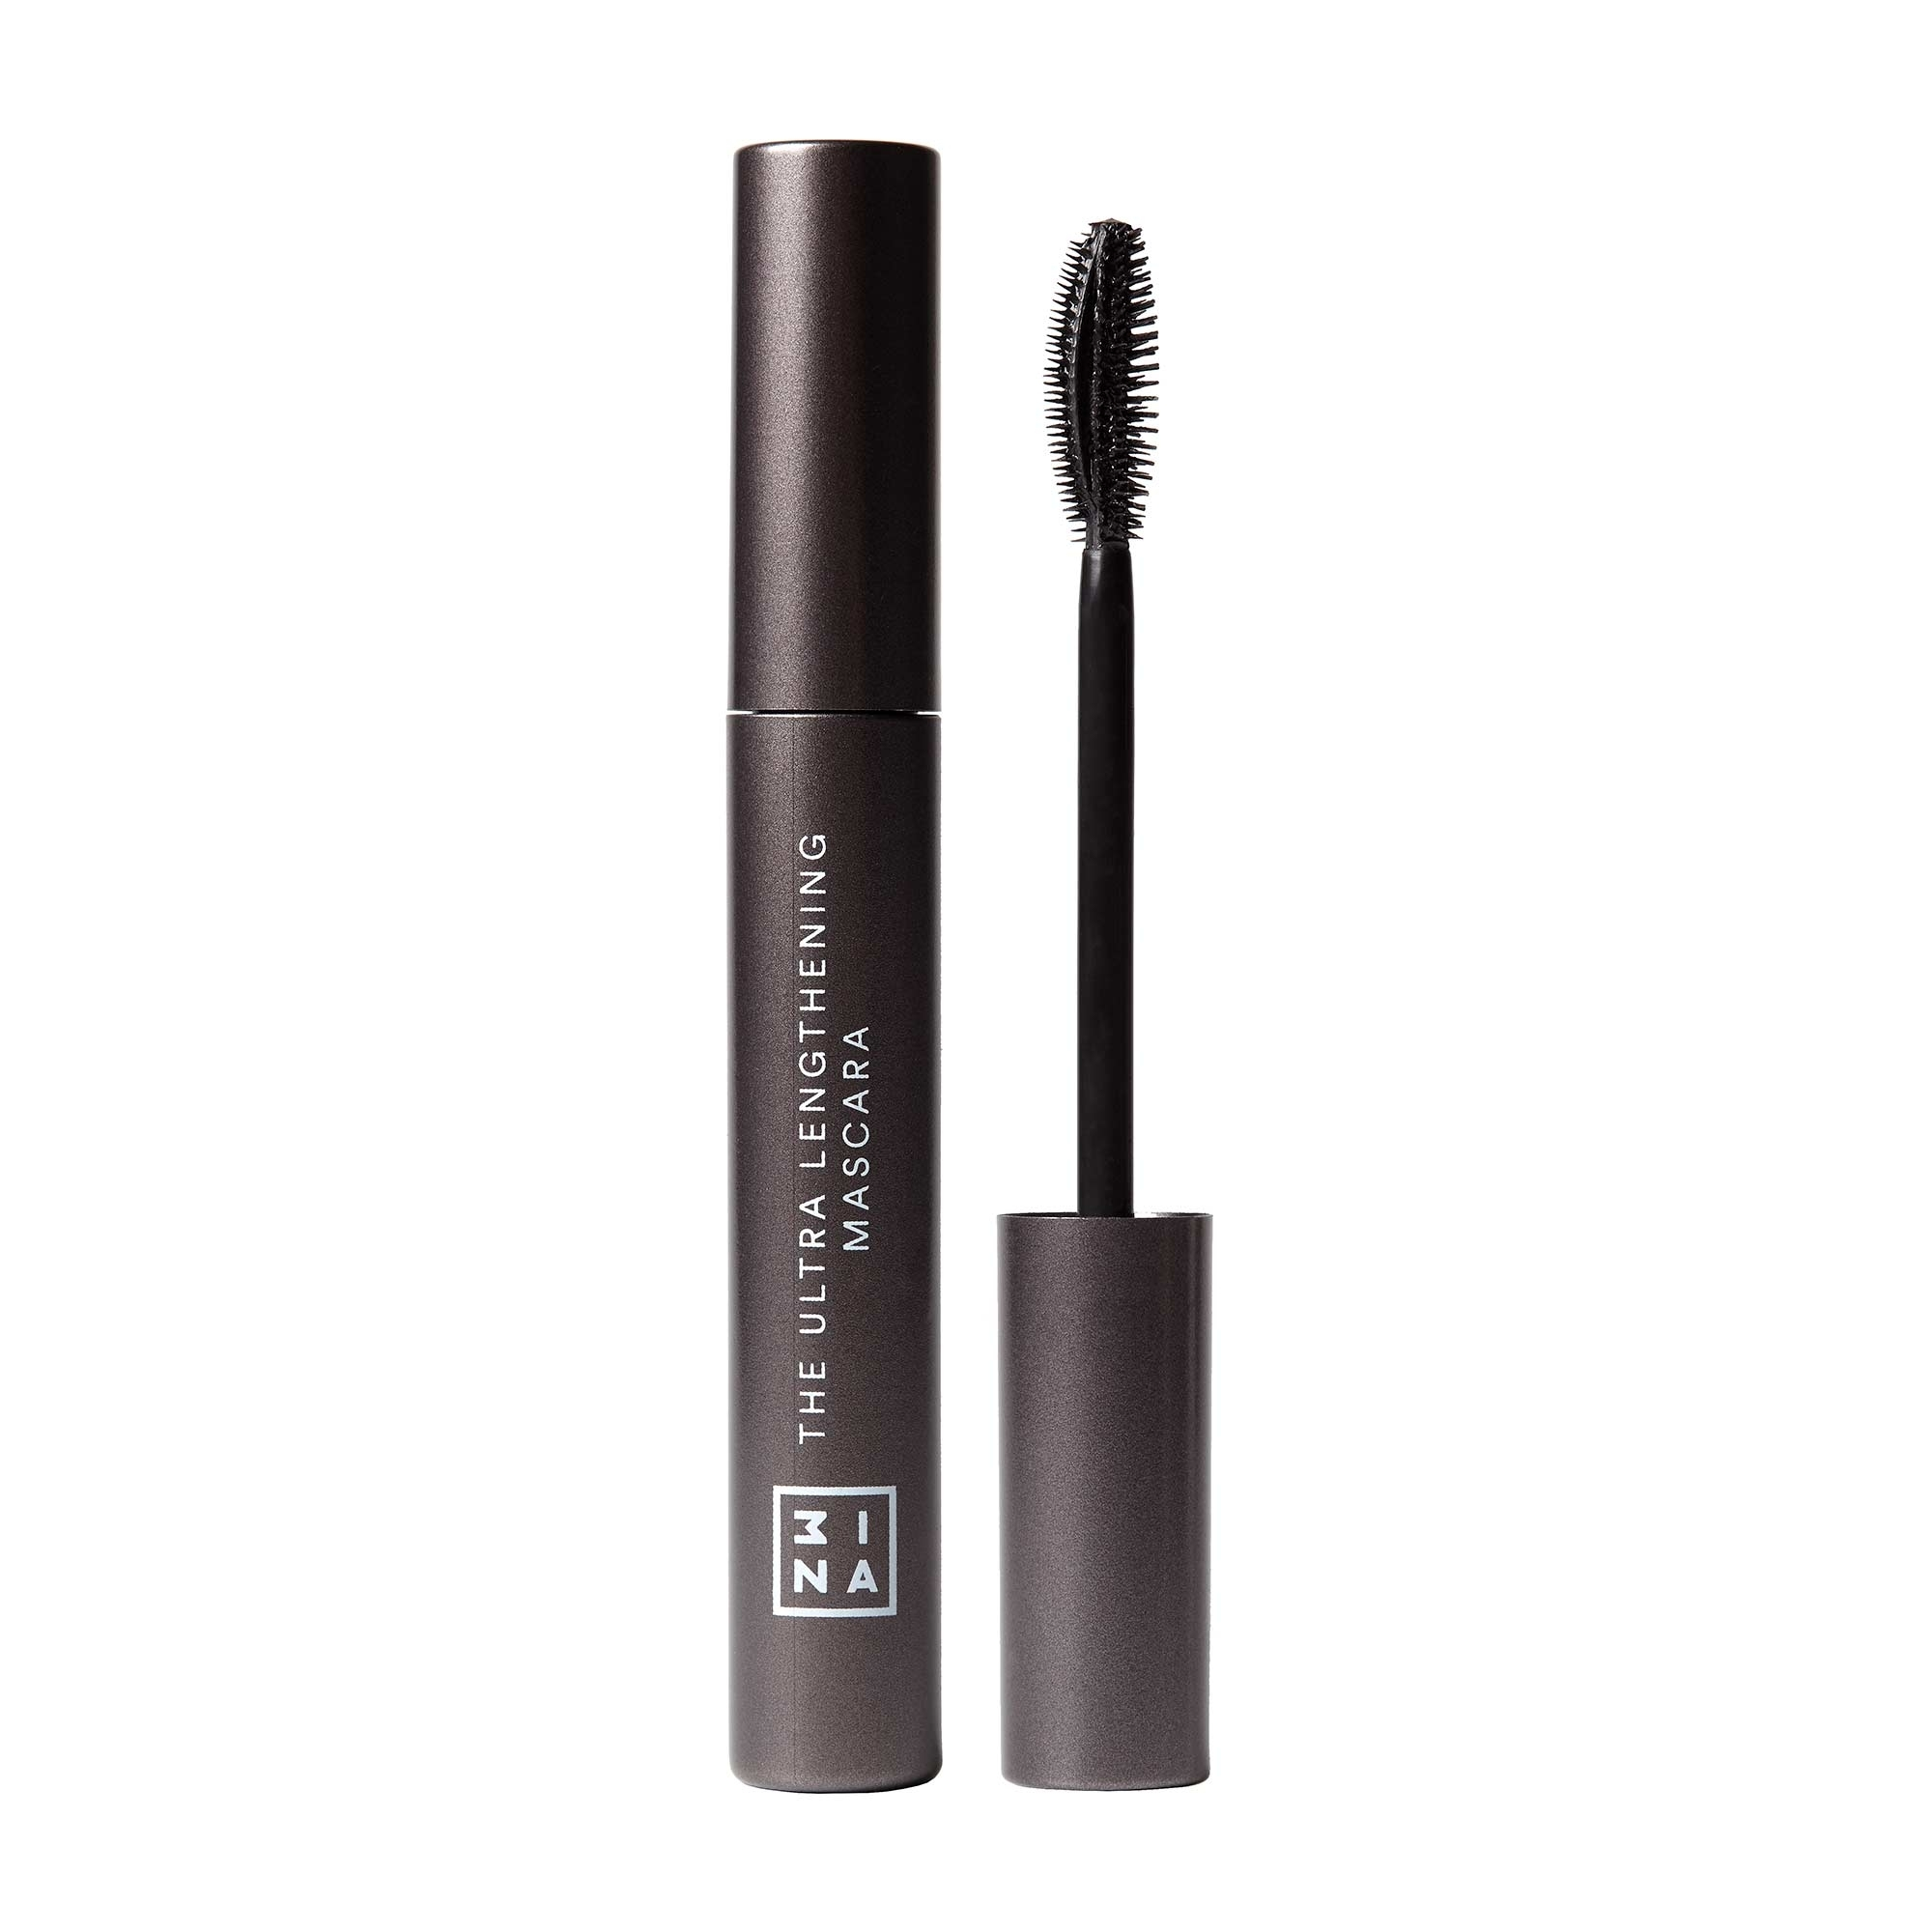 3INA Makeup | The Ultra Lengthening Mascara Black